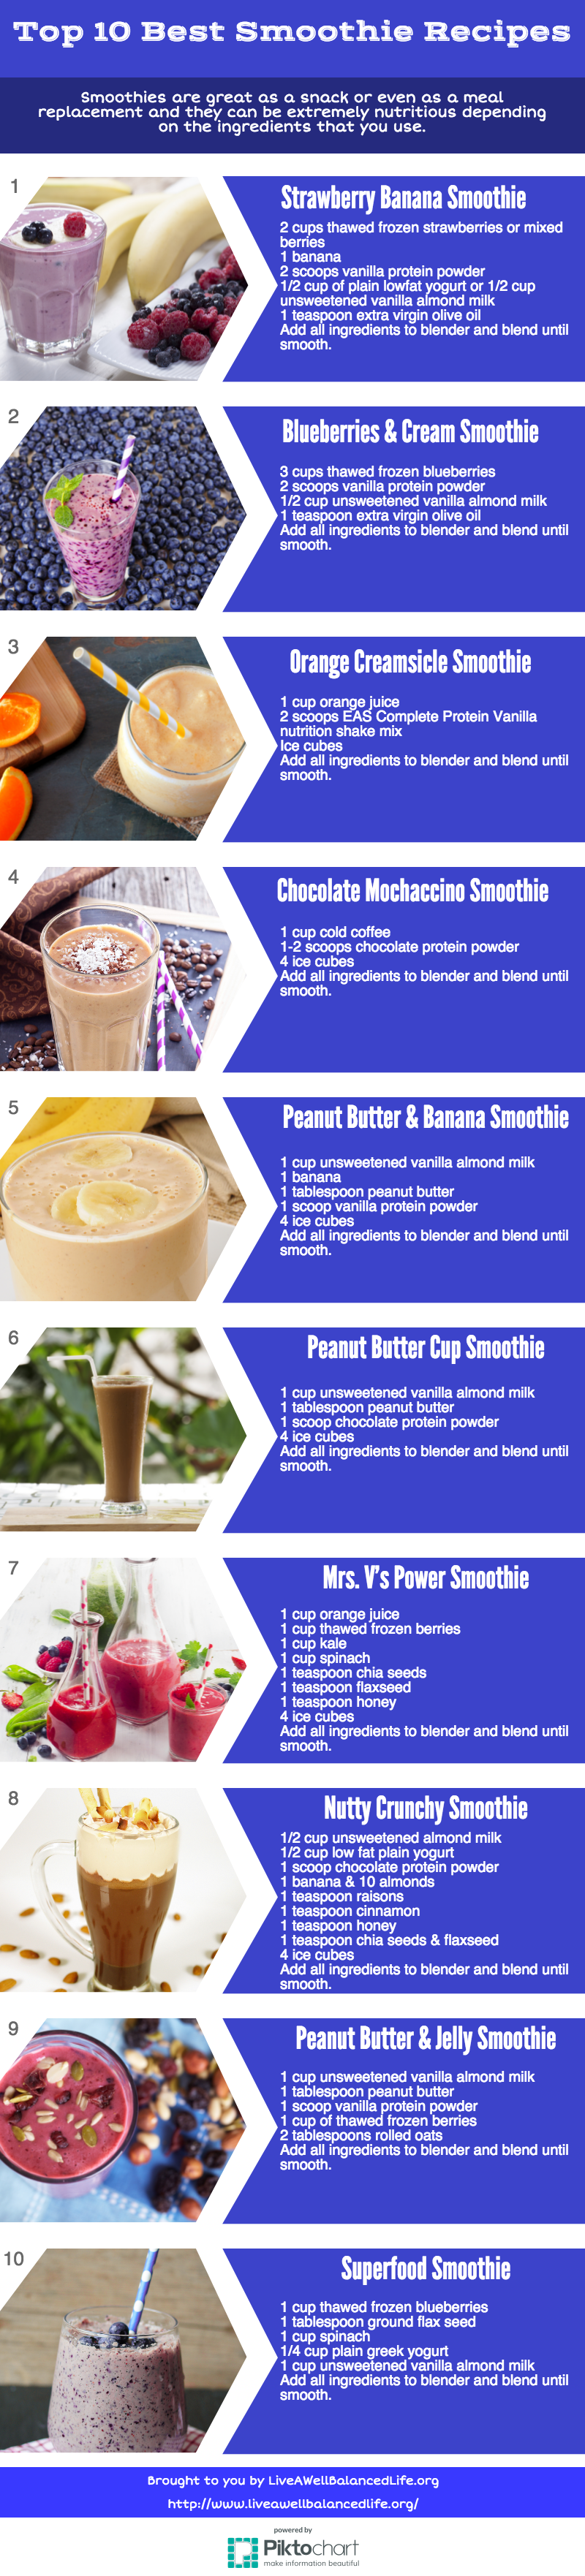 Top 10 Best Smoothie Recipes